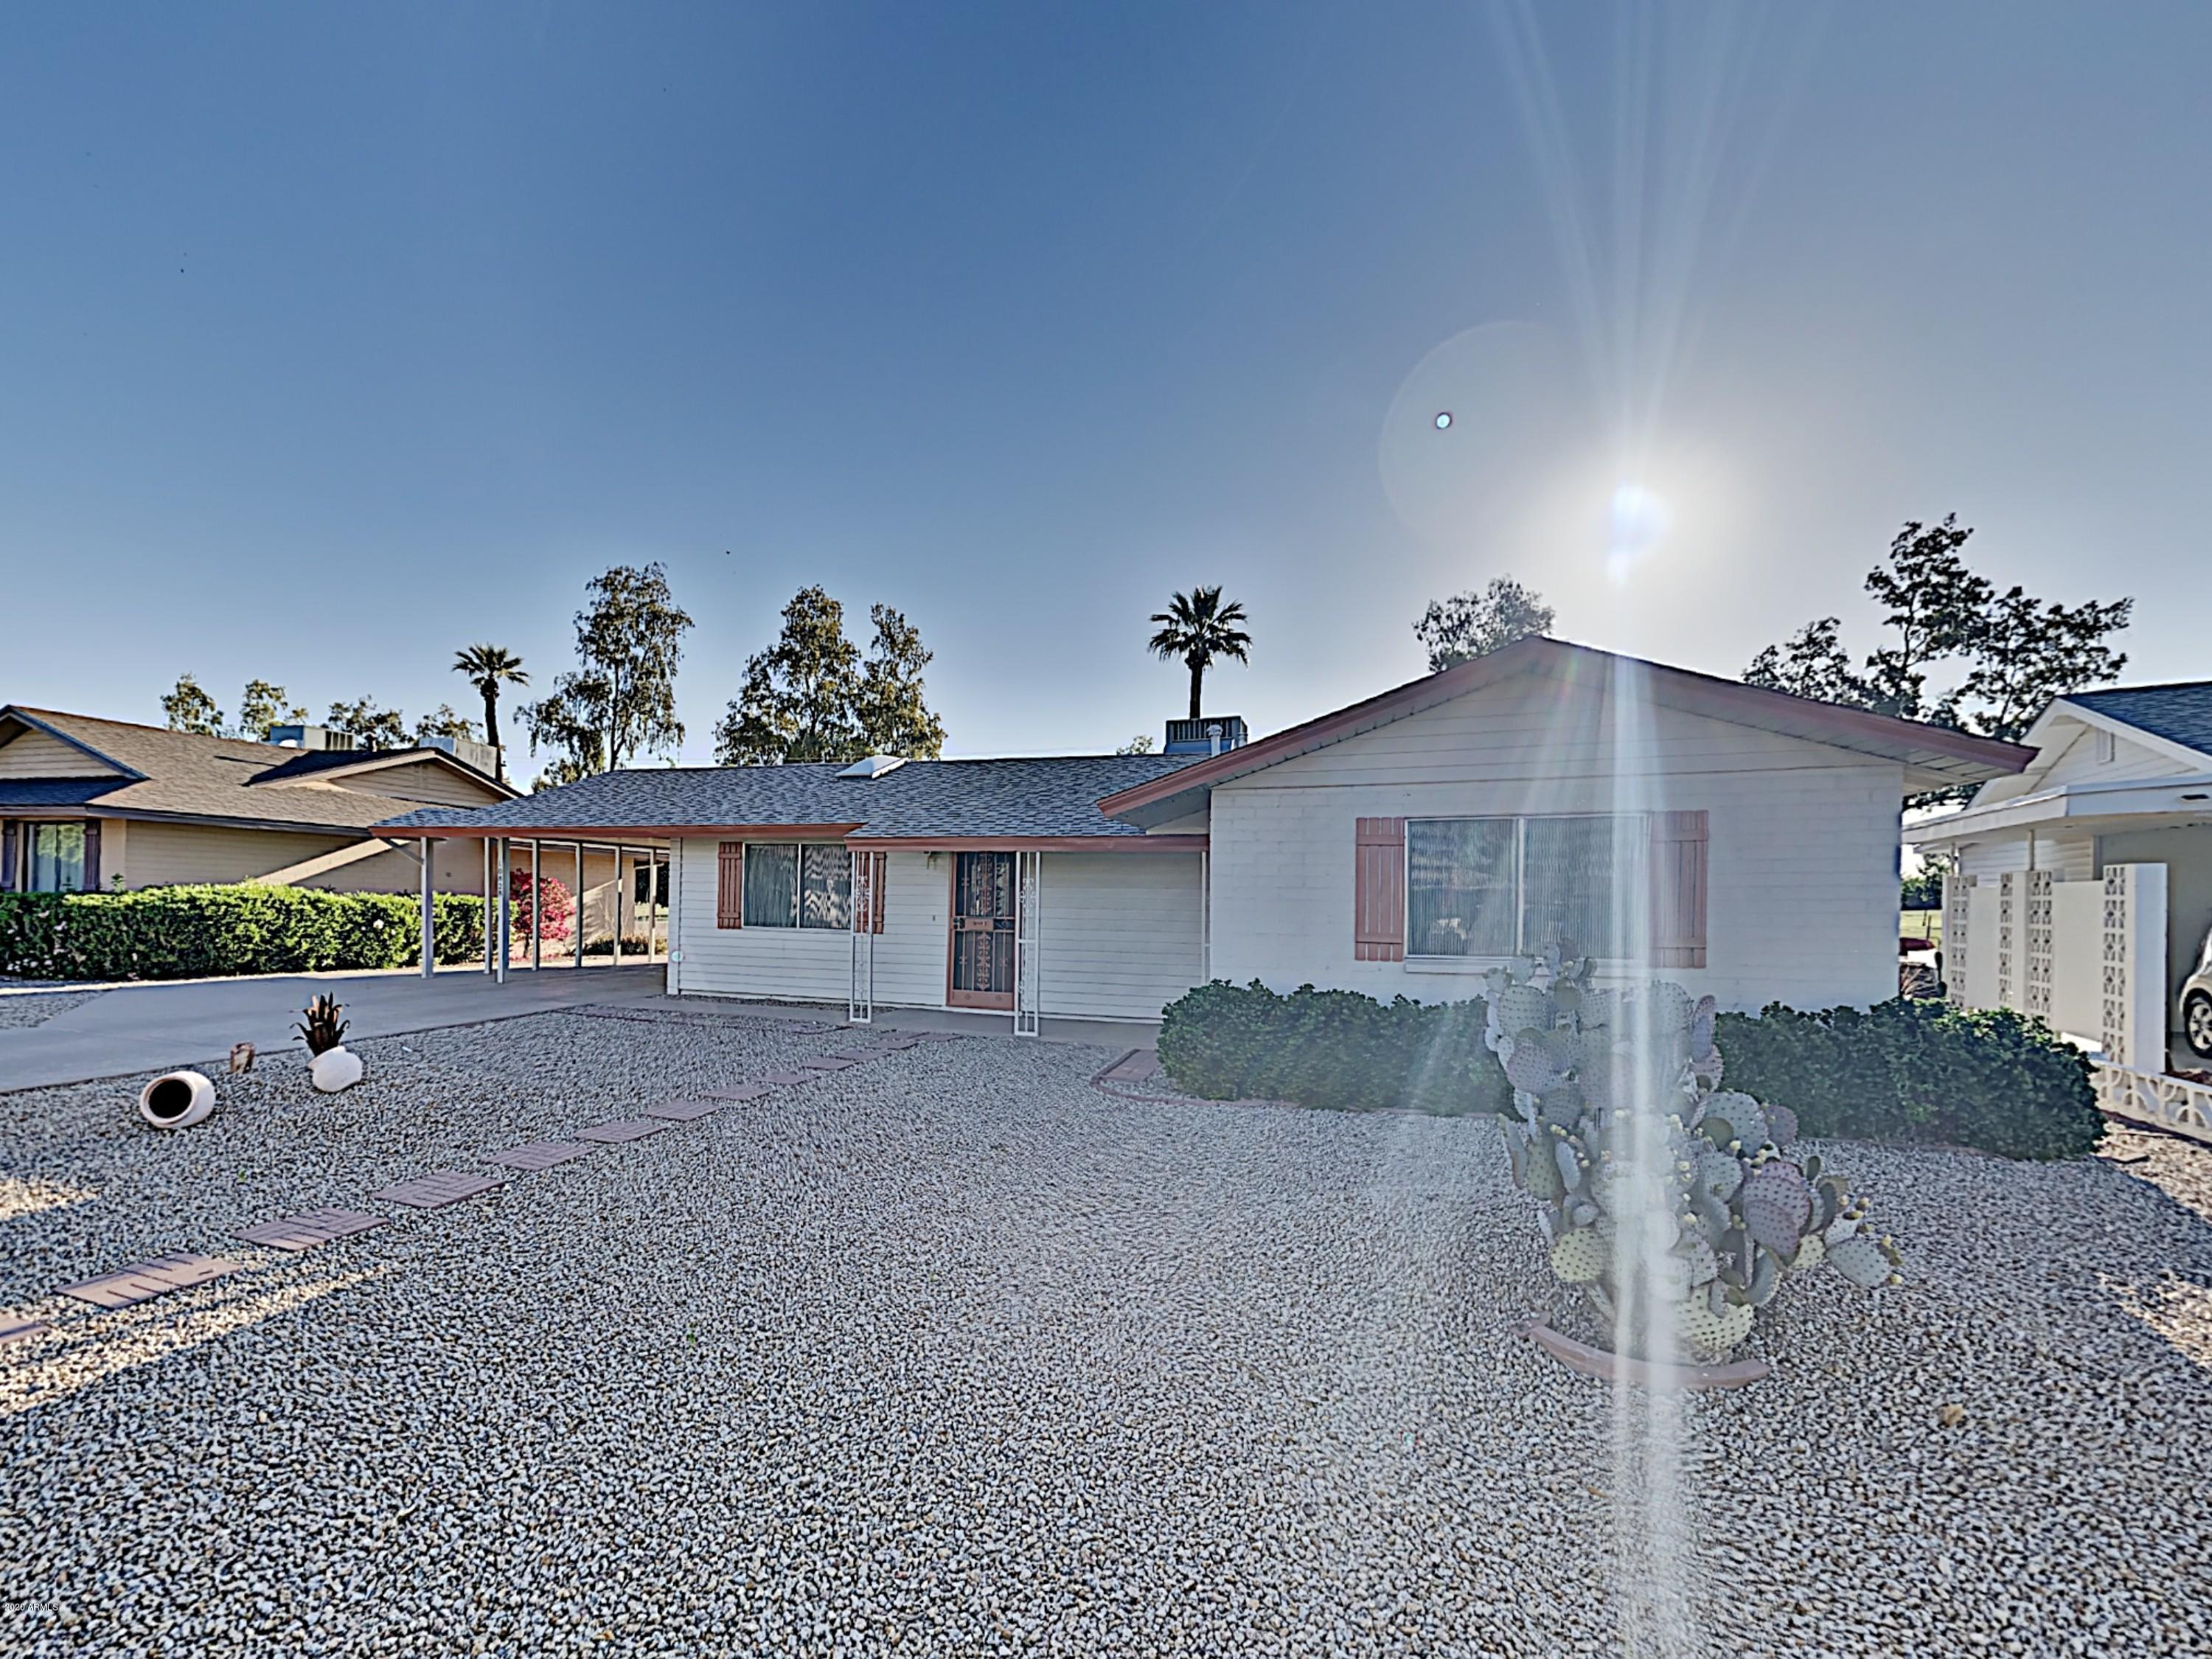 10828 W CROSBY Drive, Sun City, AZ 85351, 2 Bedrooms Bedrooms, ,Residential Lease,For Rent,10828 W CROSBY Drive,6168898